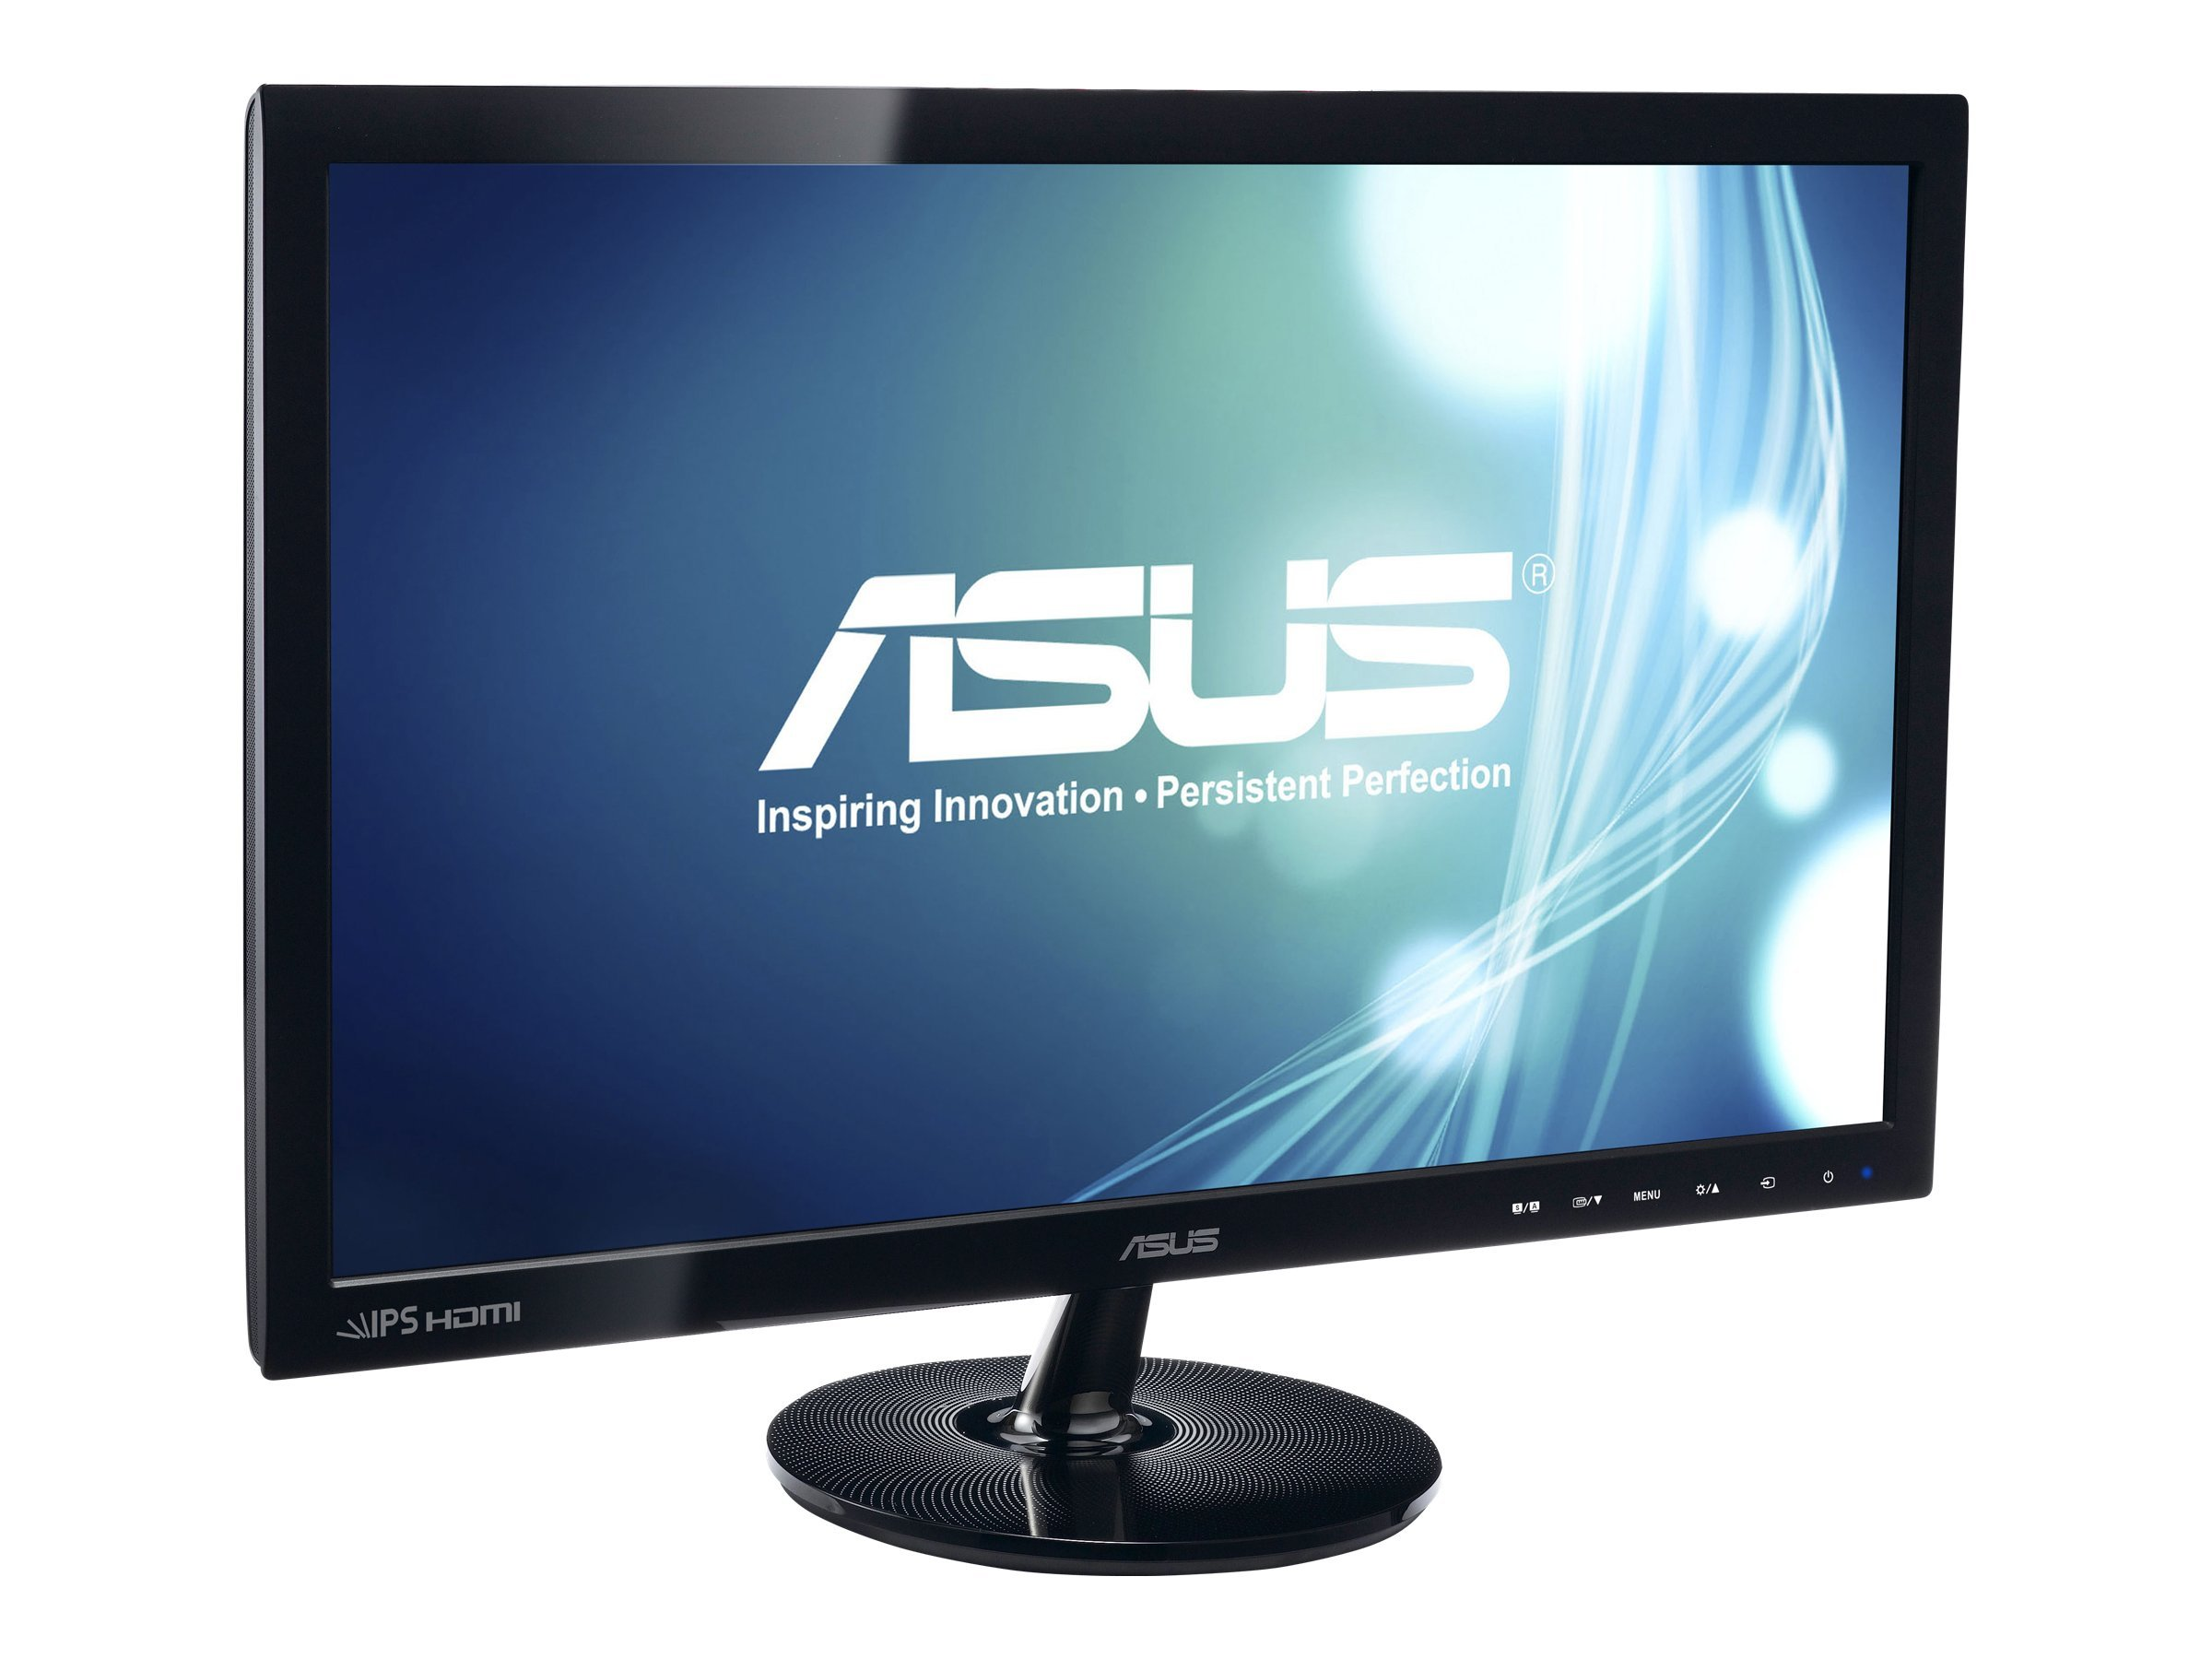 Asus 22 VS229H-P Full HD IPS LED Monitor, VS229H-P